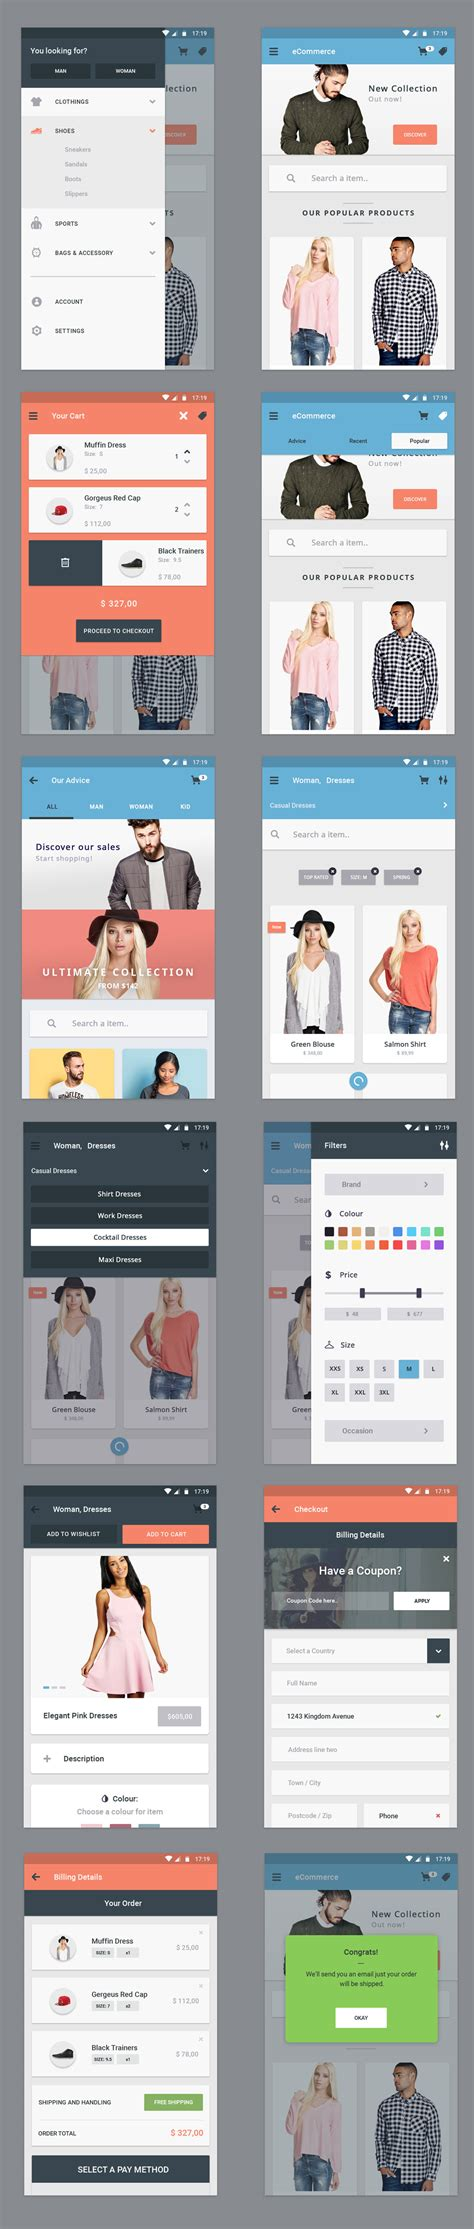 ui layout free ecommerce app ui designs graphicsfuel